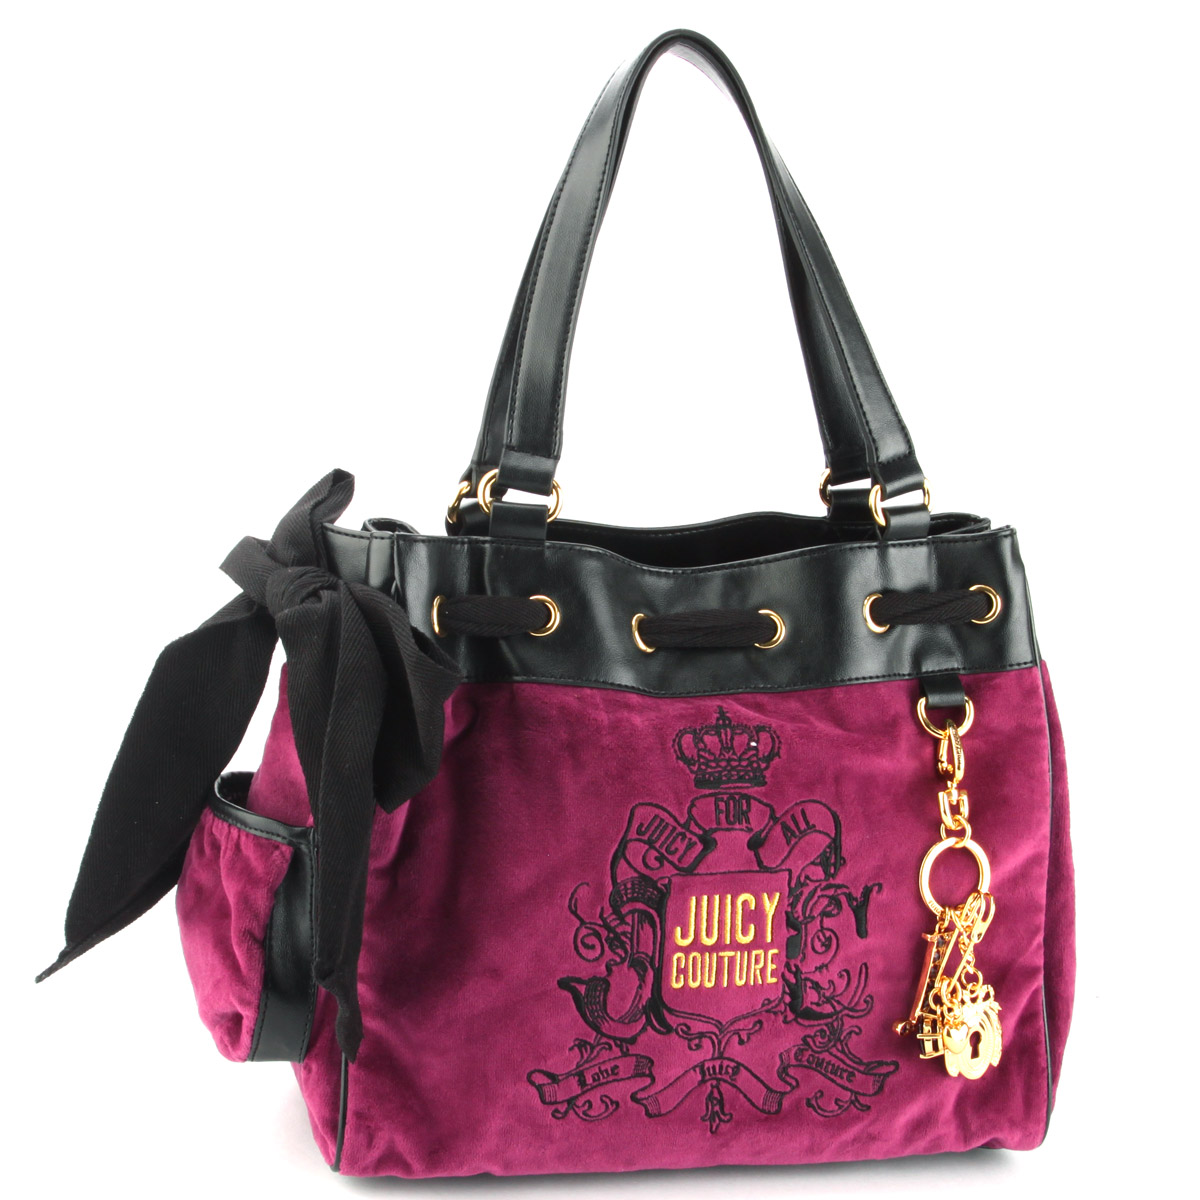 Juicy Couture Forever Crest Daydreamer Handbag- Plum